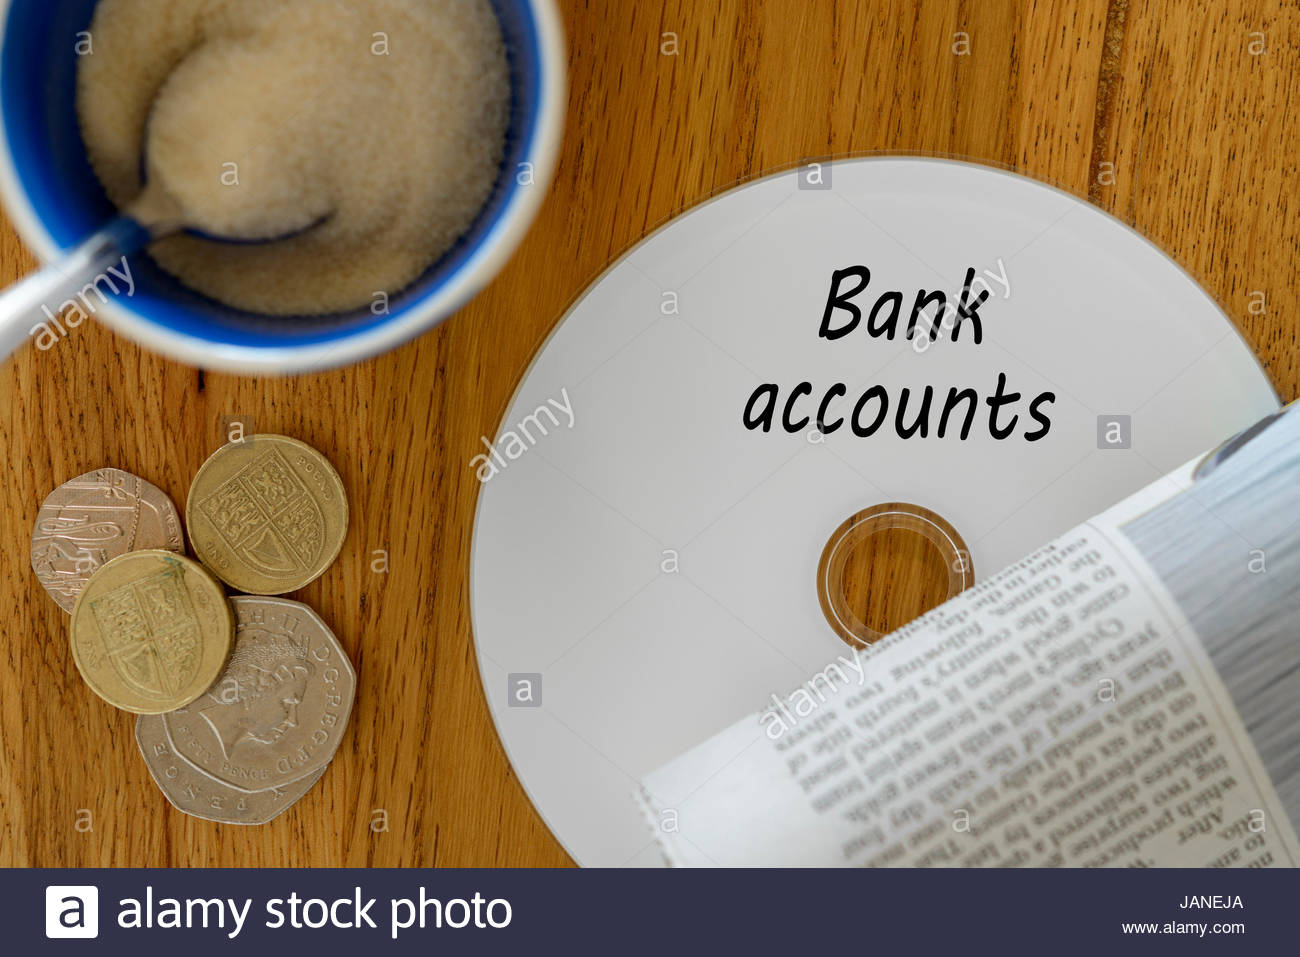 Bank accounts, data disc left on cafe table, Dorset, England. - Stock Image